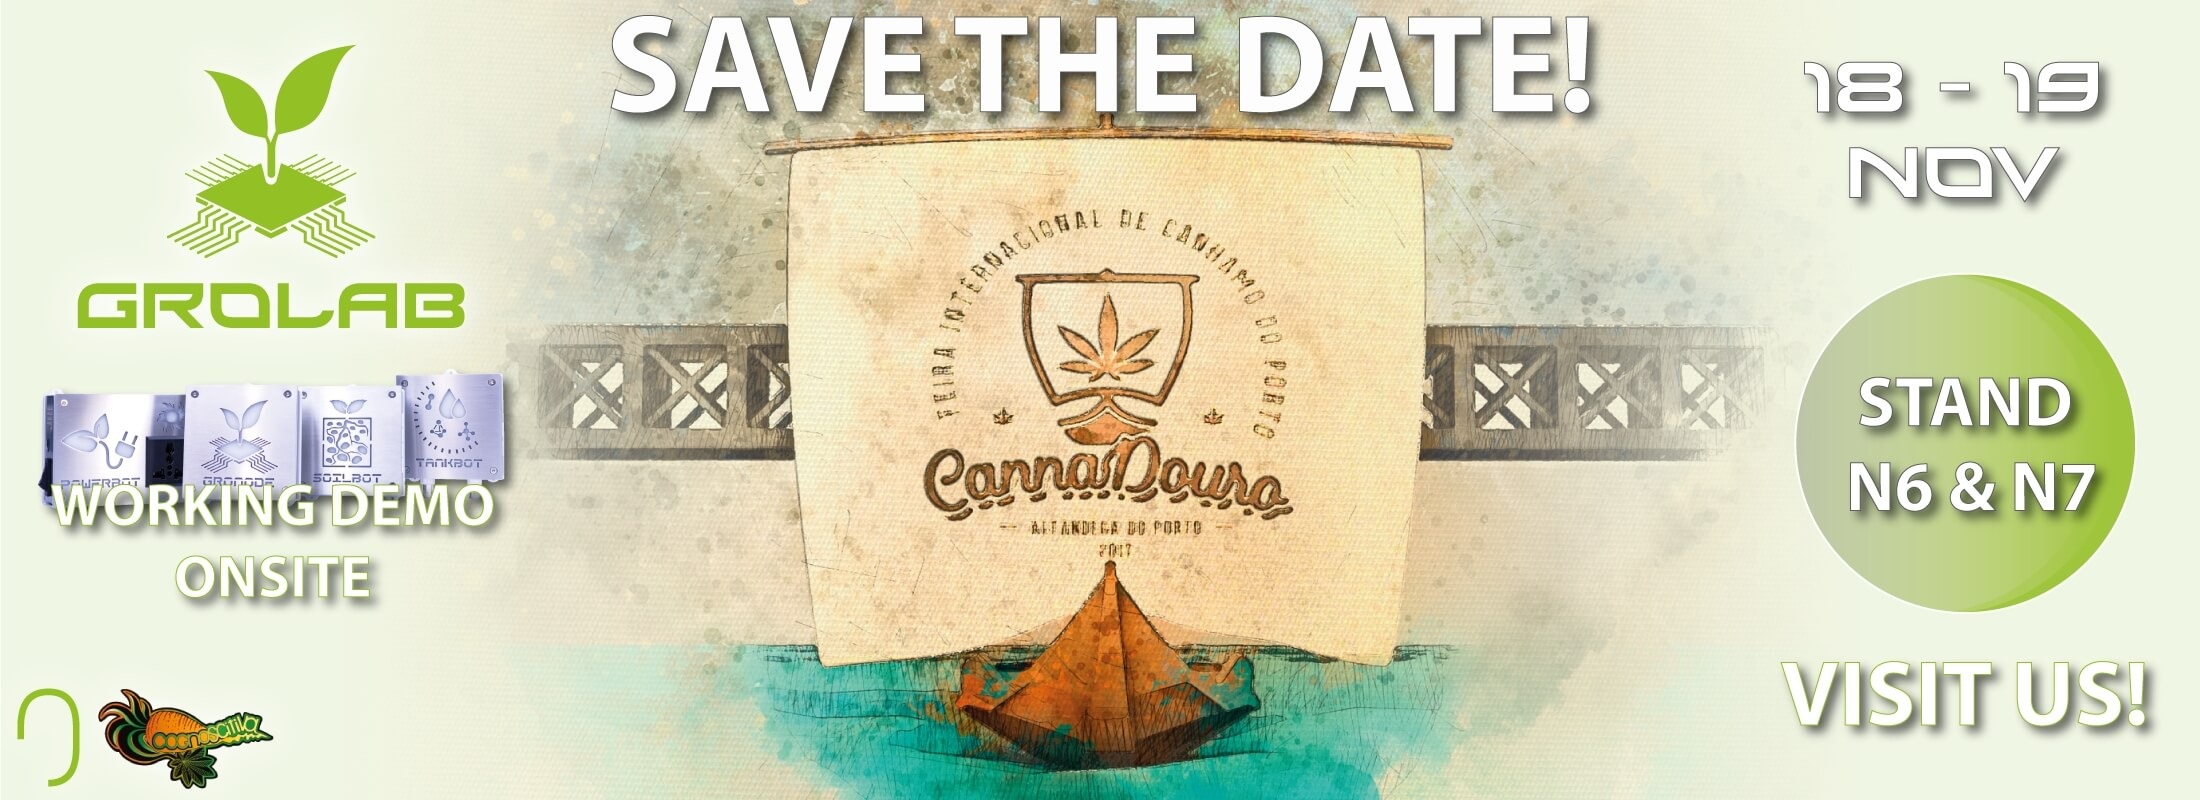 Open Grow™ and GroLab™ will be present at CannaDouro 2017, Porto, Portugal - November 18-19 - Stand N6 and N7 with Cognoscitiva